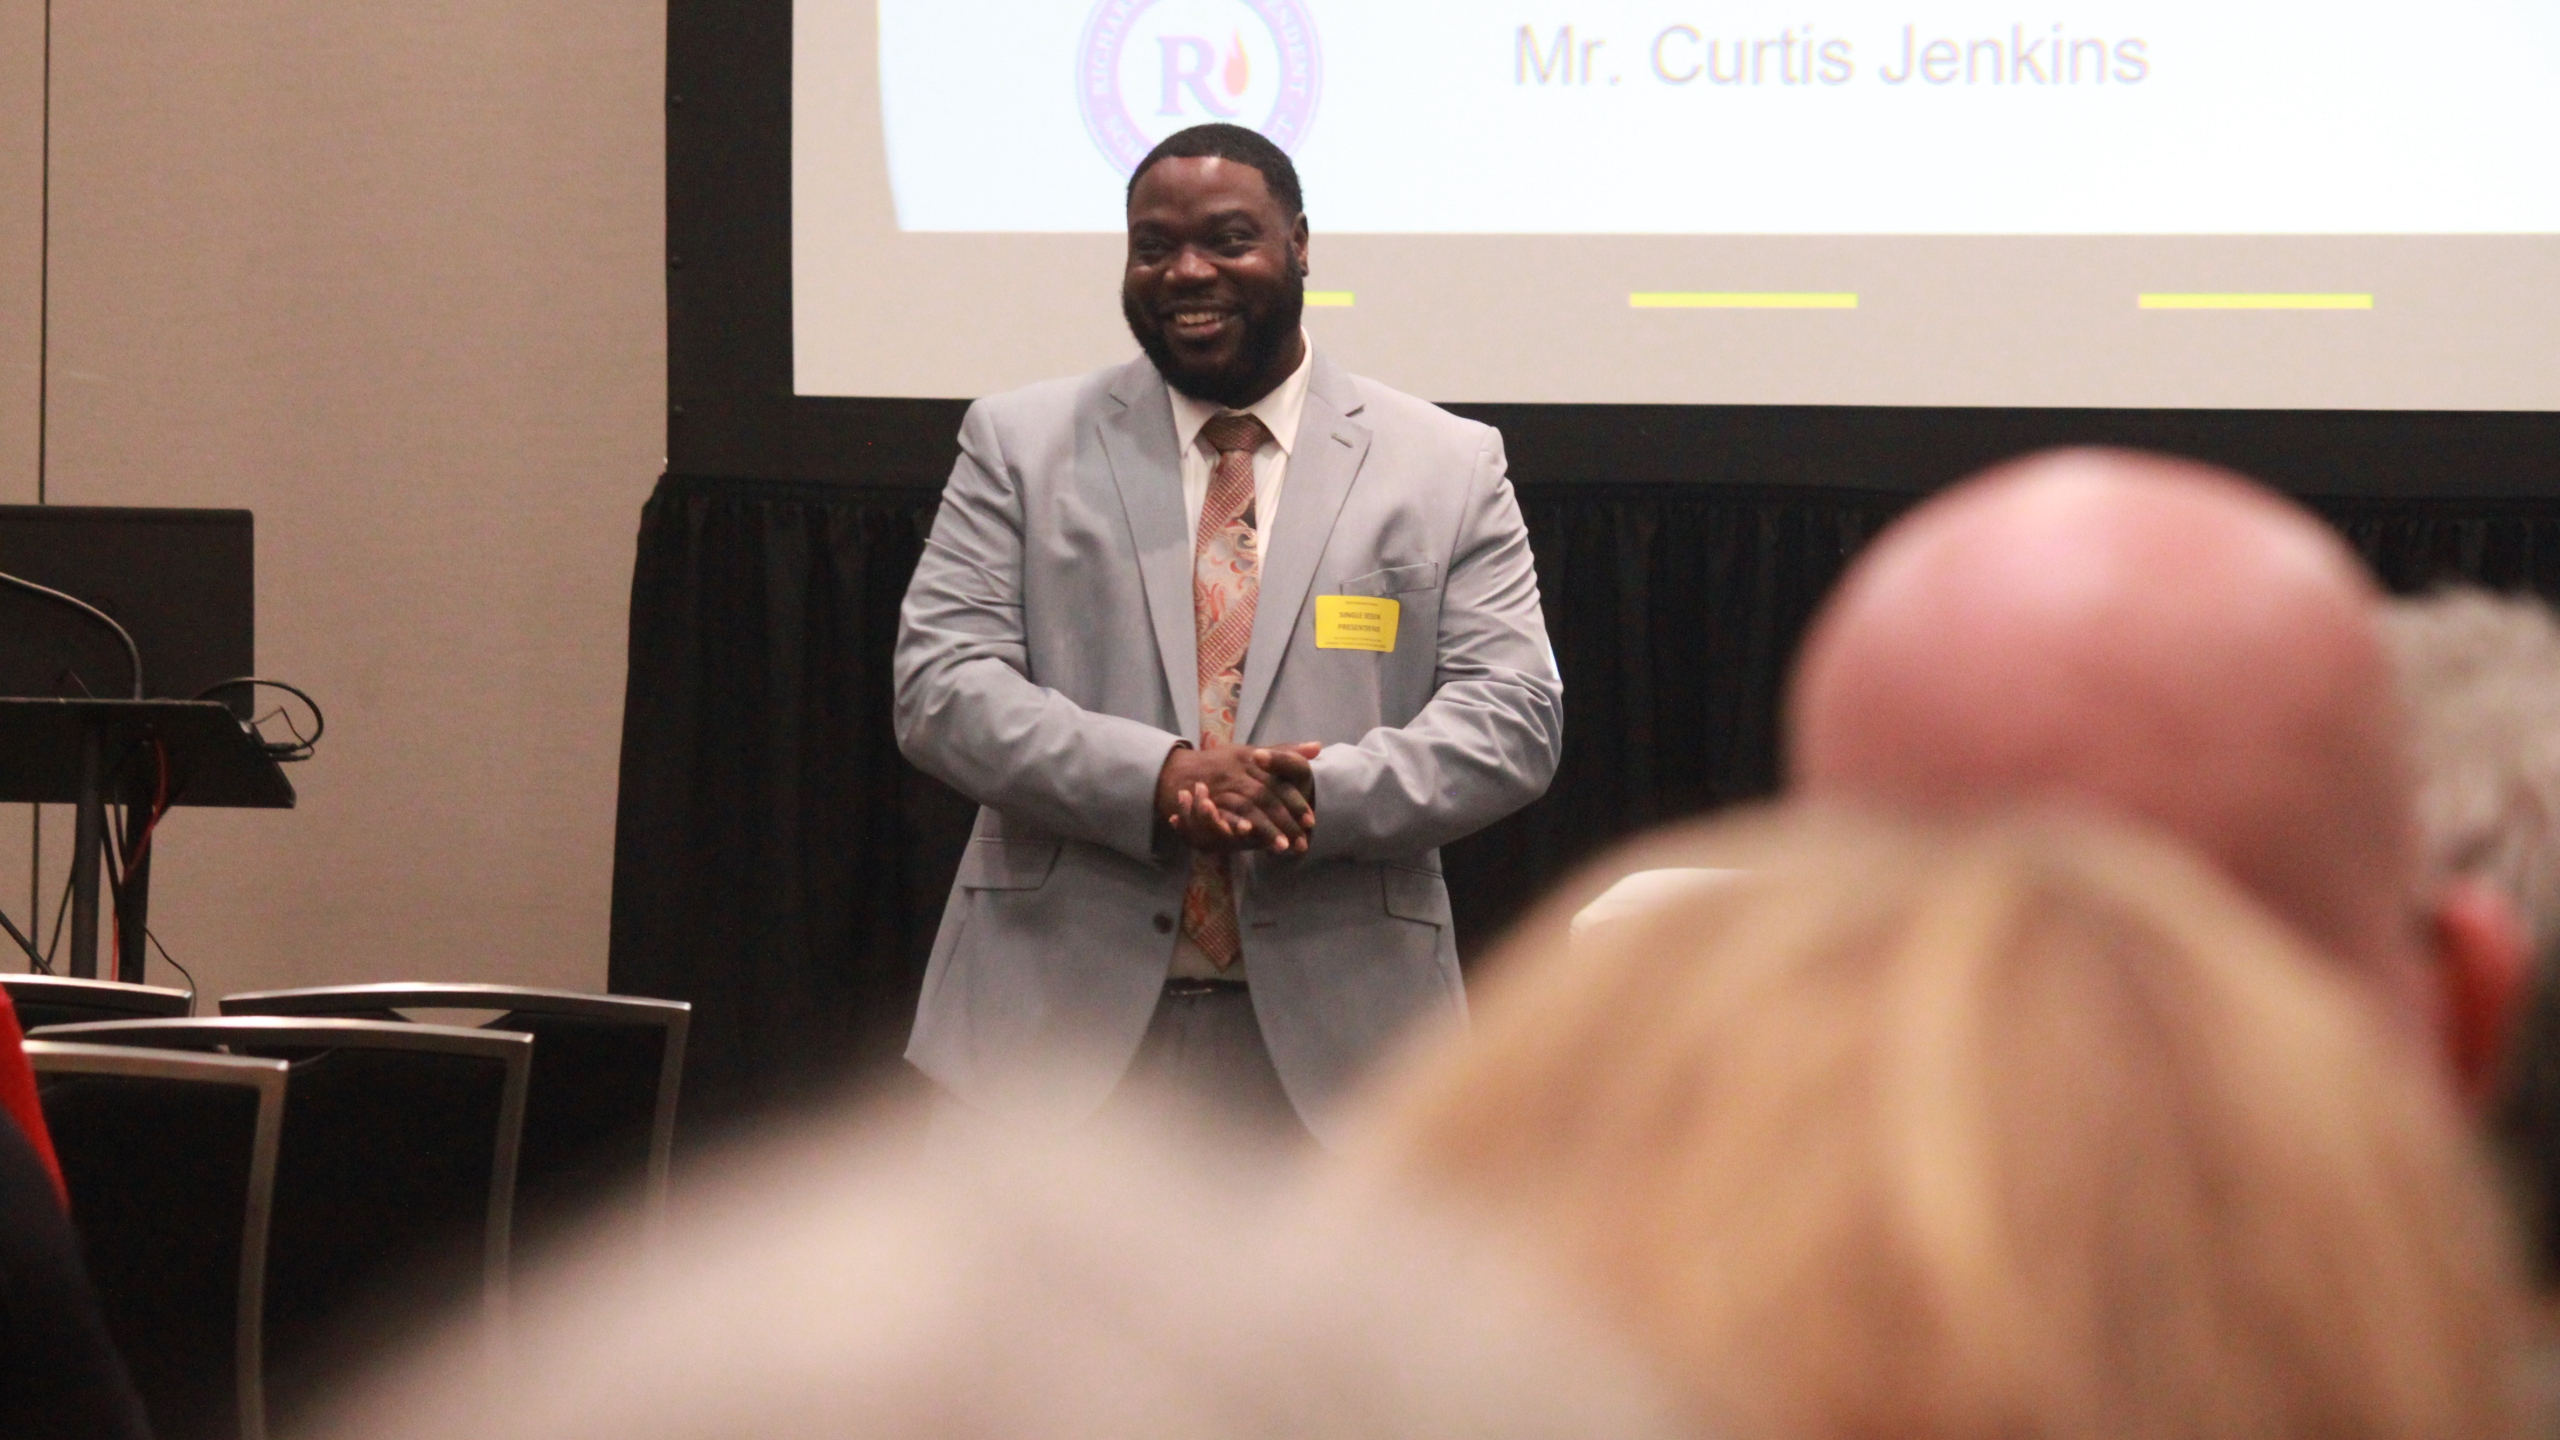 Curtis Jenkins TASA conference